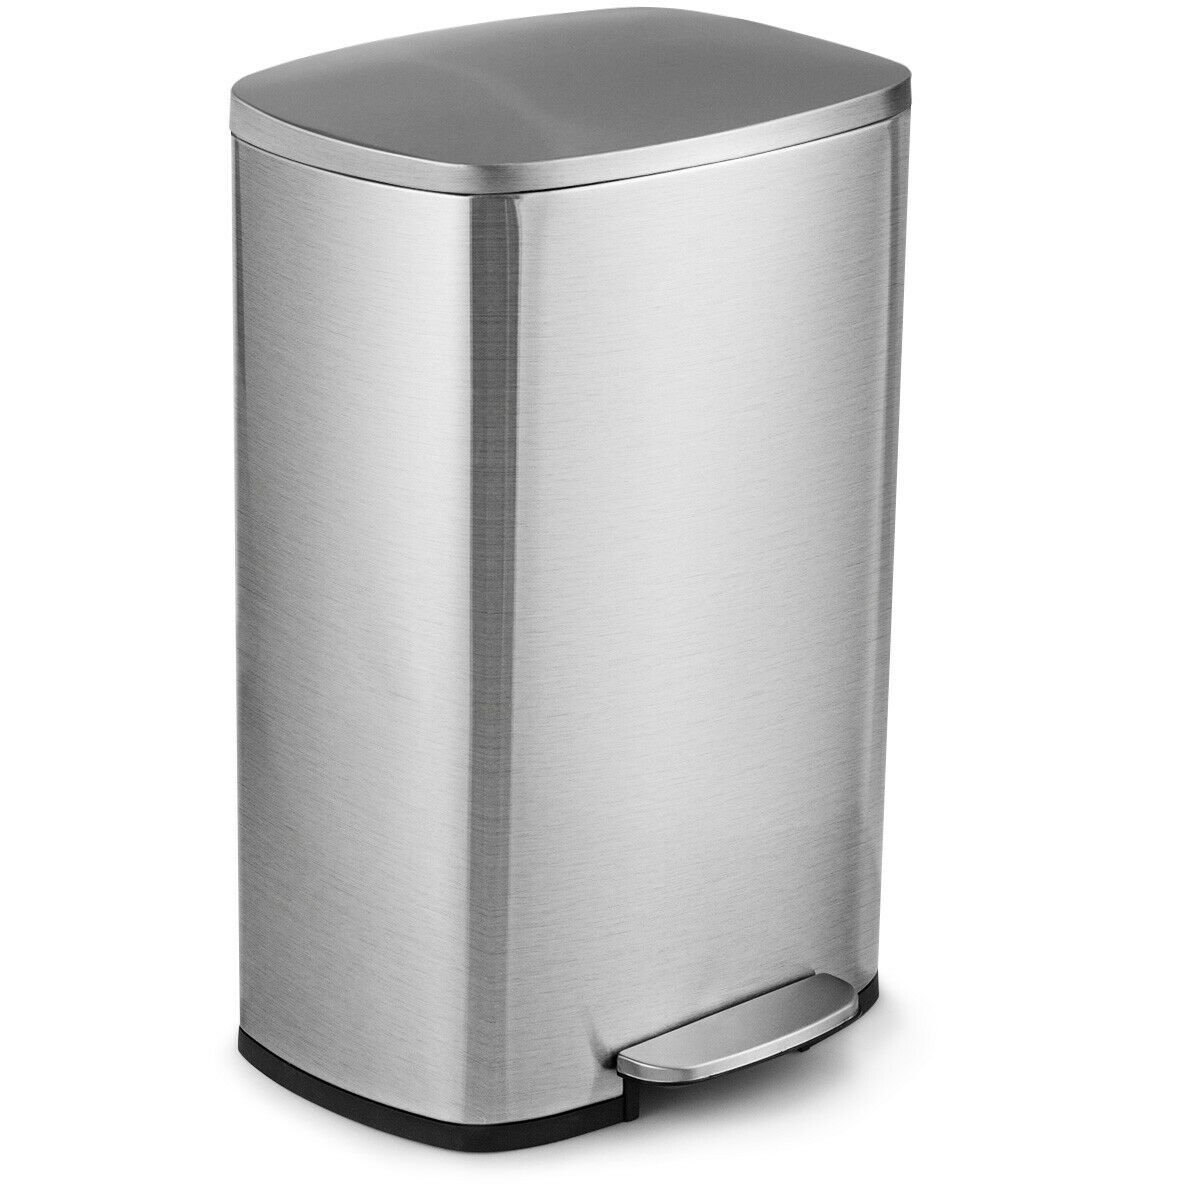 13 2 Gallon Trash Garbage Can Stainless Steel Bin With Bucket Stainless Steel Kitchen Kitchen Trash Can Kitchen Trash Cans Stainless steel kitchen trash can